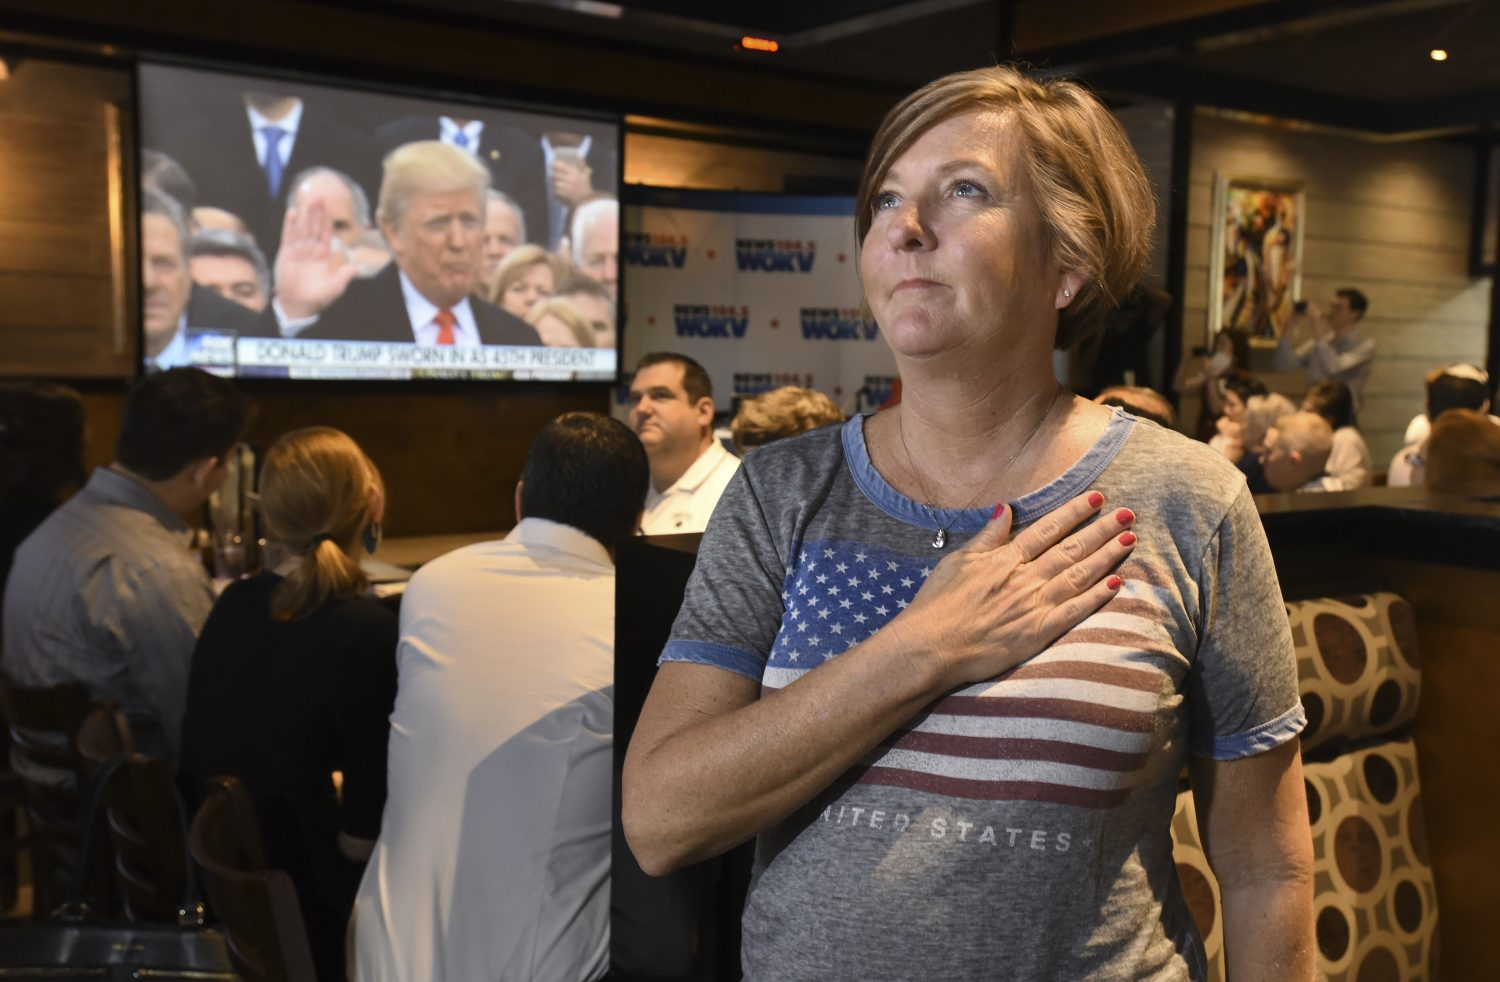 Victoria Barette from Jacksonville, Fla., holds her hand over her heart as she and other patrons watch Donald Trump take the presidential oath of office on the multiple video screens during an Inauguration Watch Party at Whiskey Jax in Marsh Landing, Fla., Friday, 20. 2017. (Bob Self/The Florida Times-Union via AP)